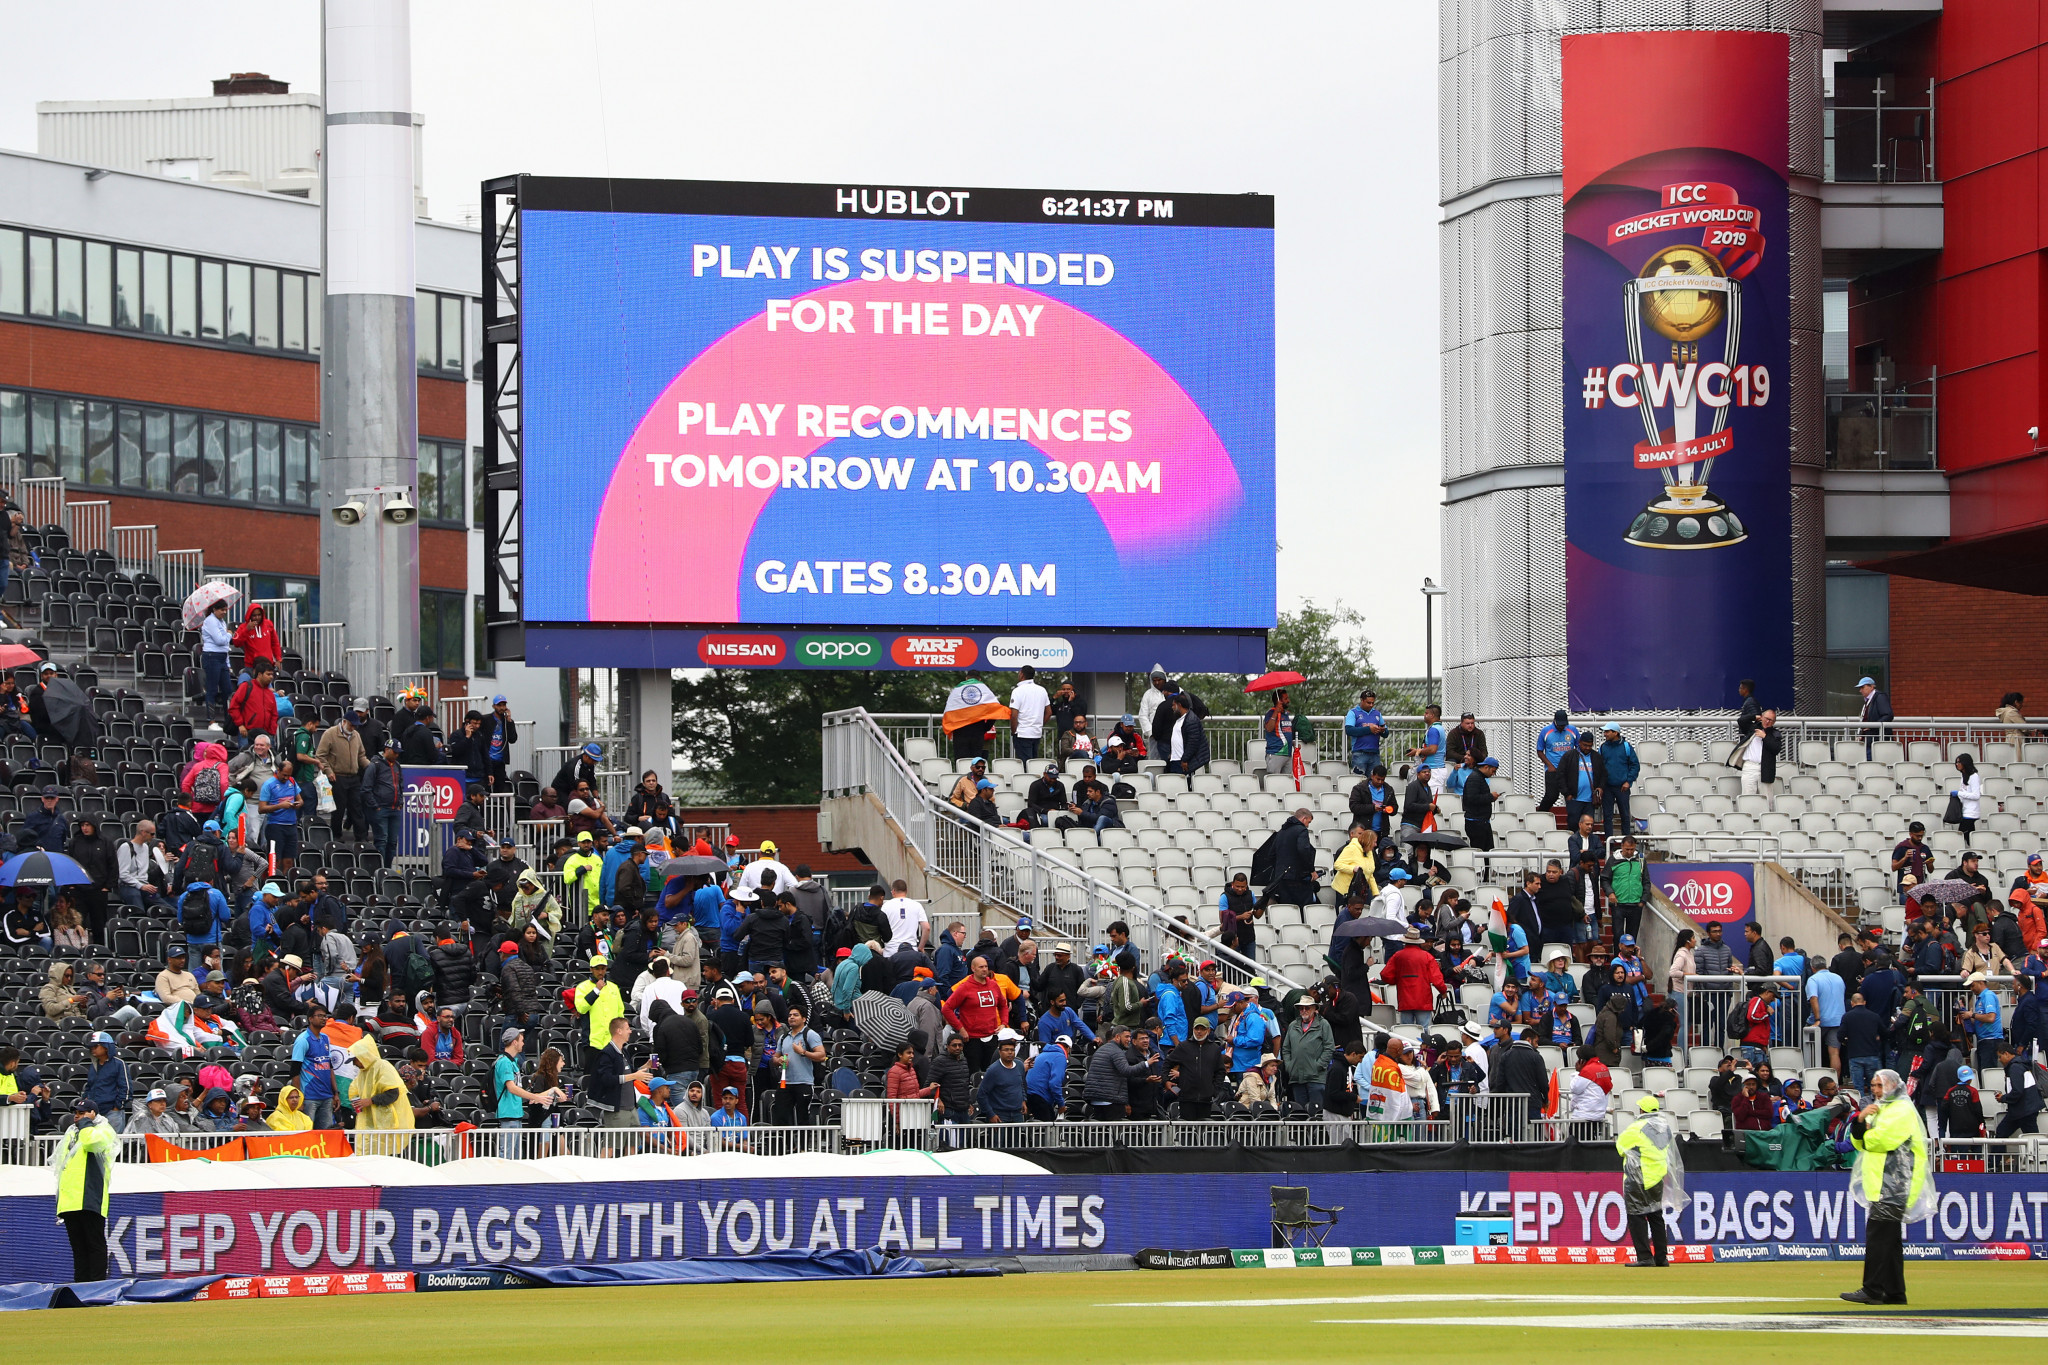 Rain forces ICC Cricket World Cup semi-final between India and New Zealand to be abandoned for day